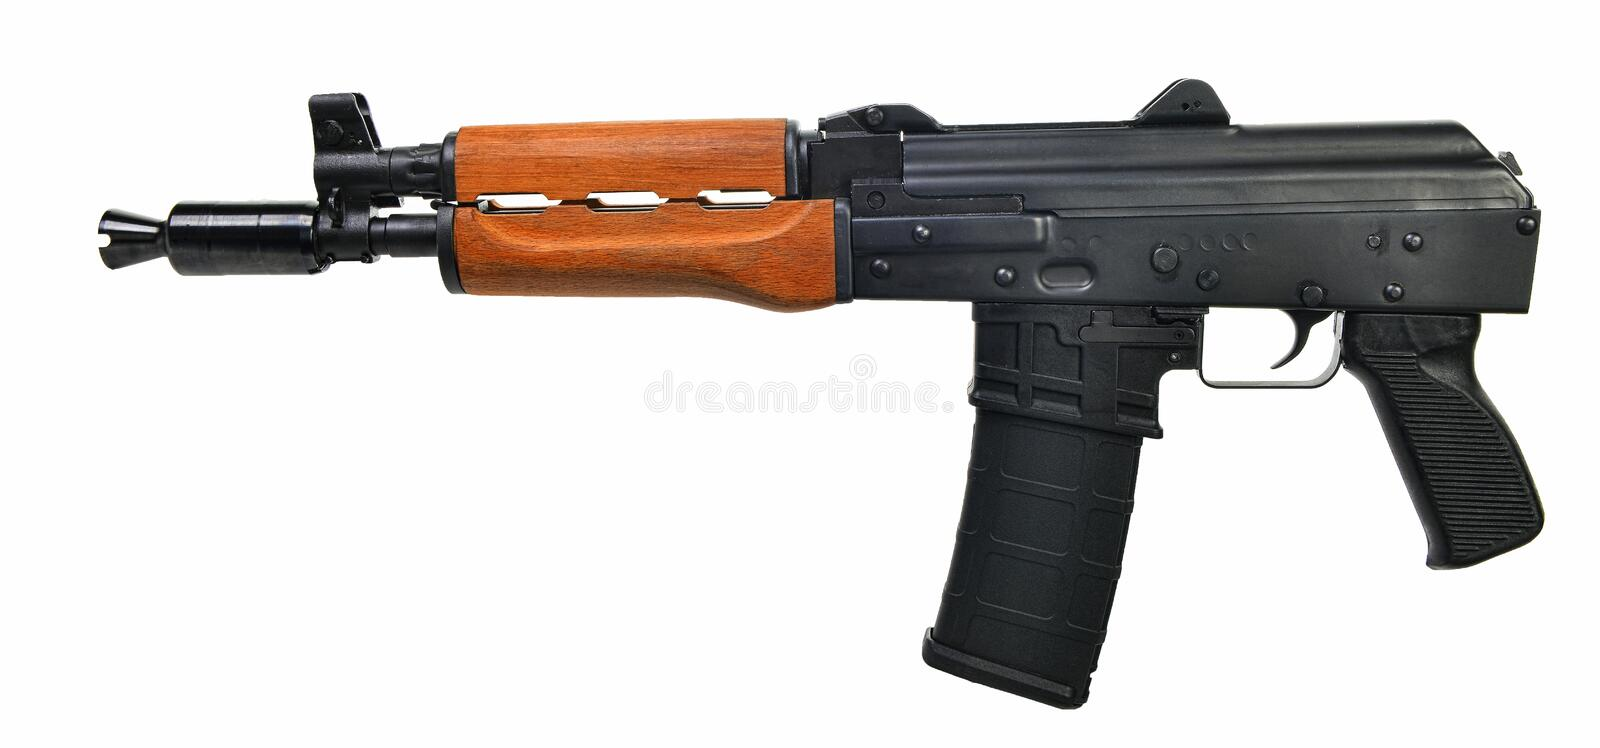 Left side AK47 Pistol isolated 0n white background royalty free stock photo